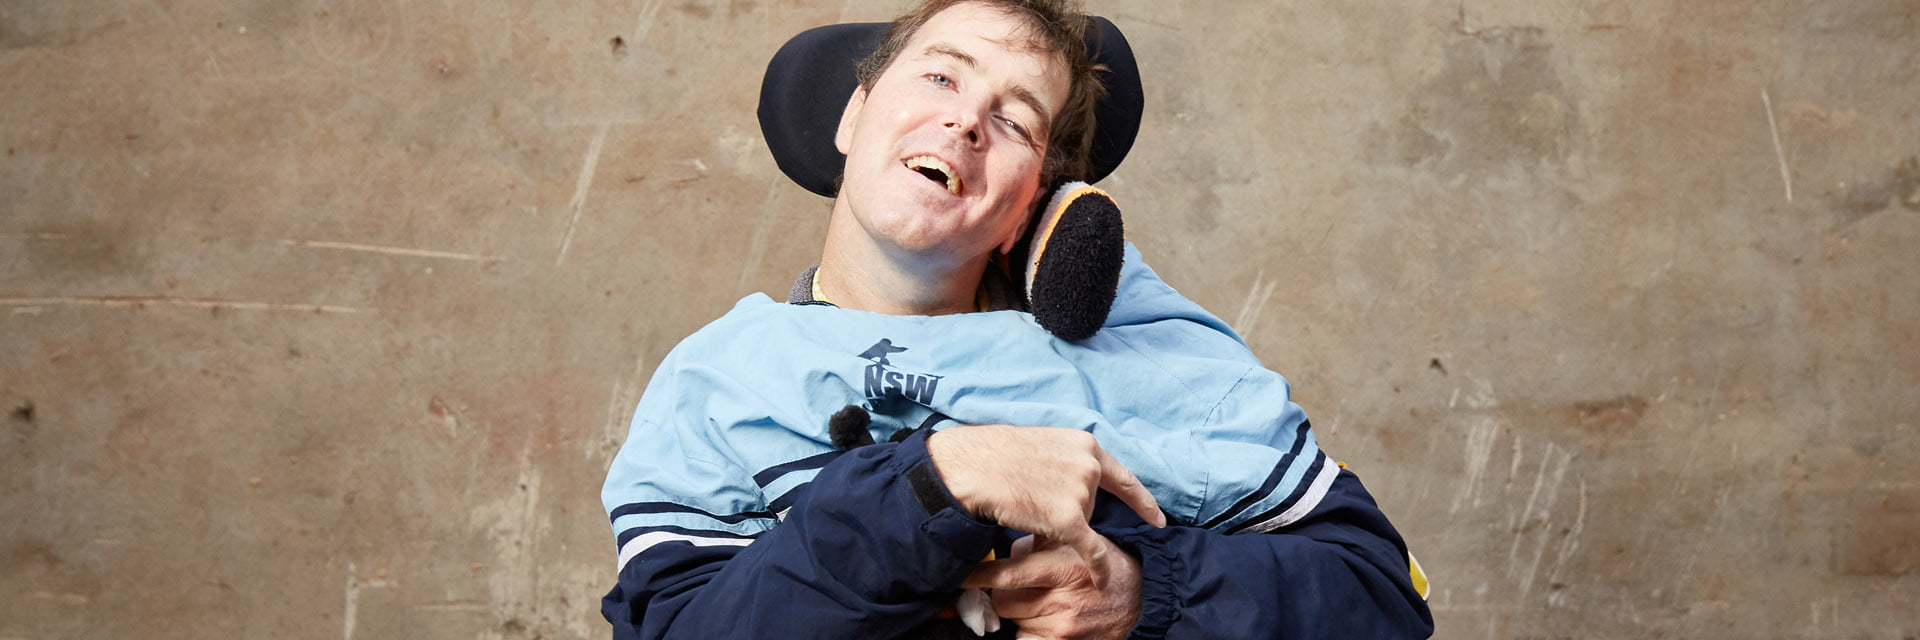 Man with a disability in Specialist Disability Accommodation